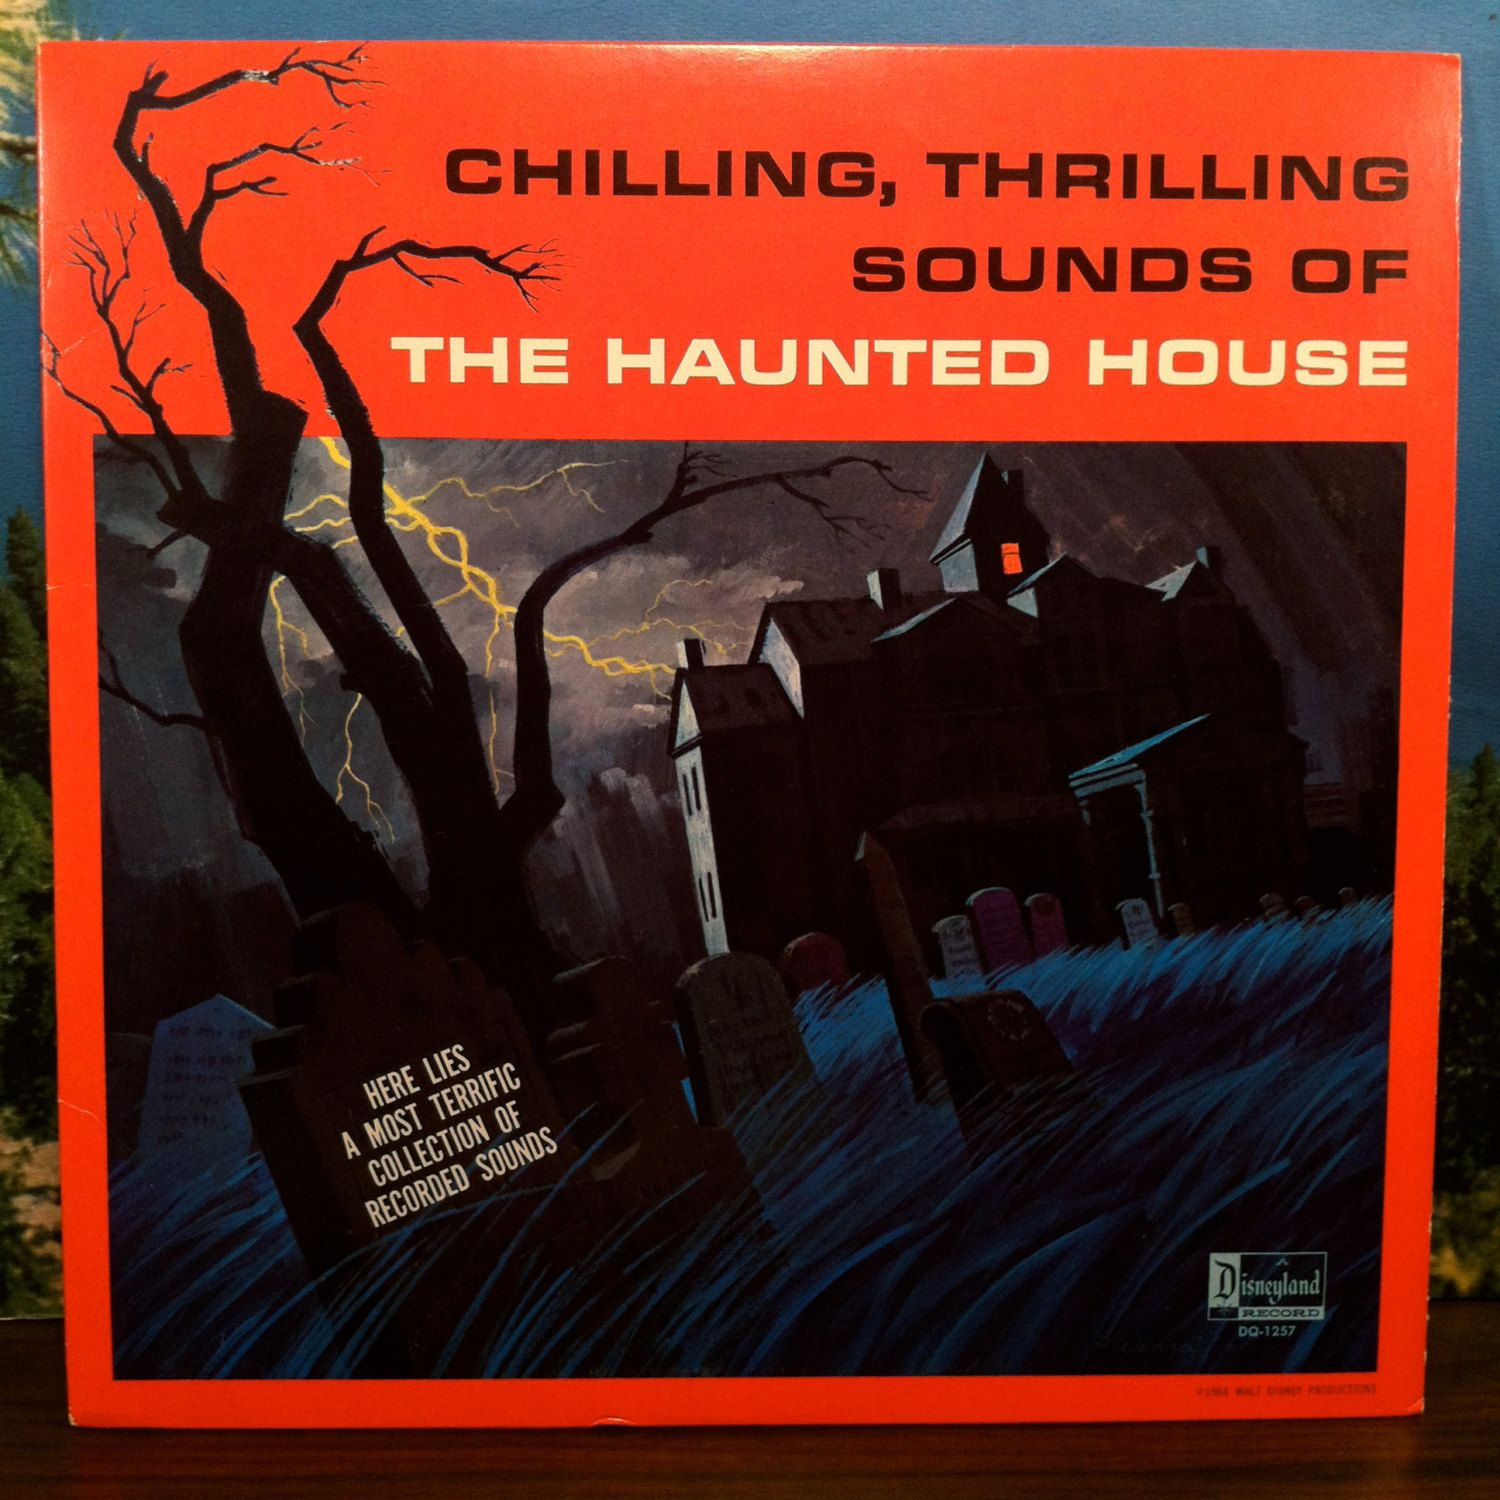 chilling thrilling sounds of the haunted house vinyl record lp disneyland scary halloween sound effects by vintagebaronrecords on etsy